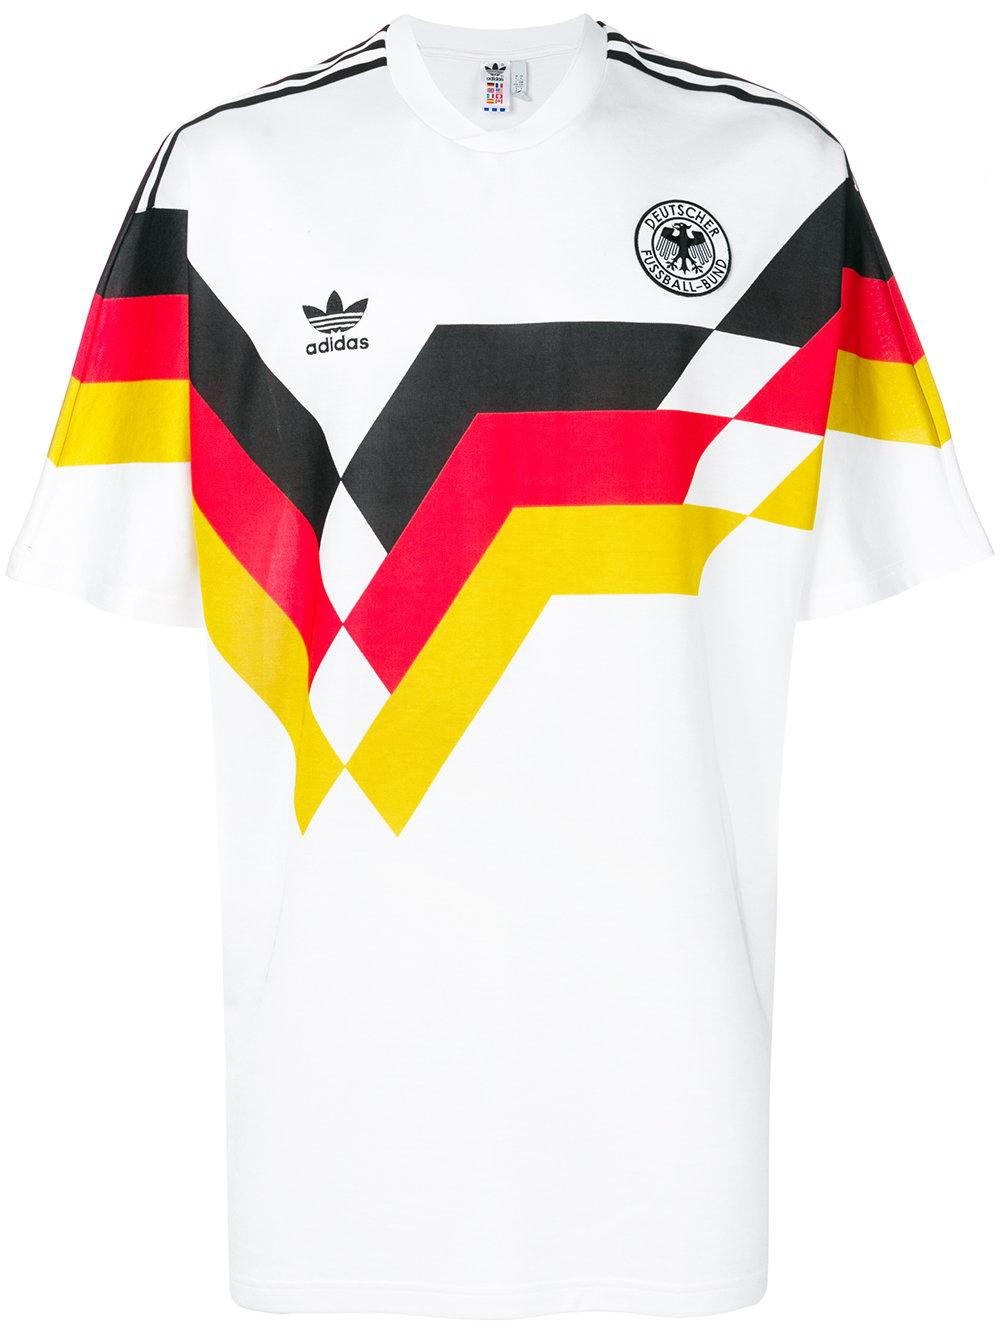 Adidas Originals Retro Germany Soccer Jersey In White Ce2343 ...